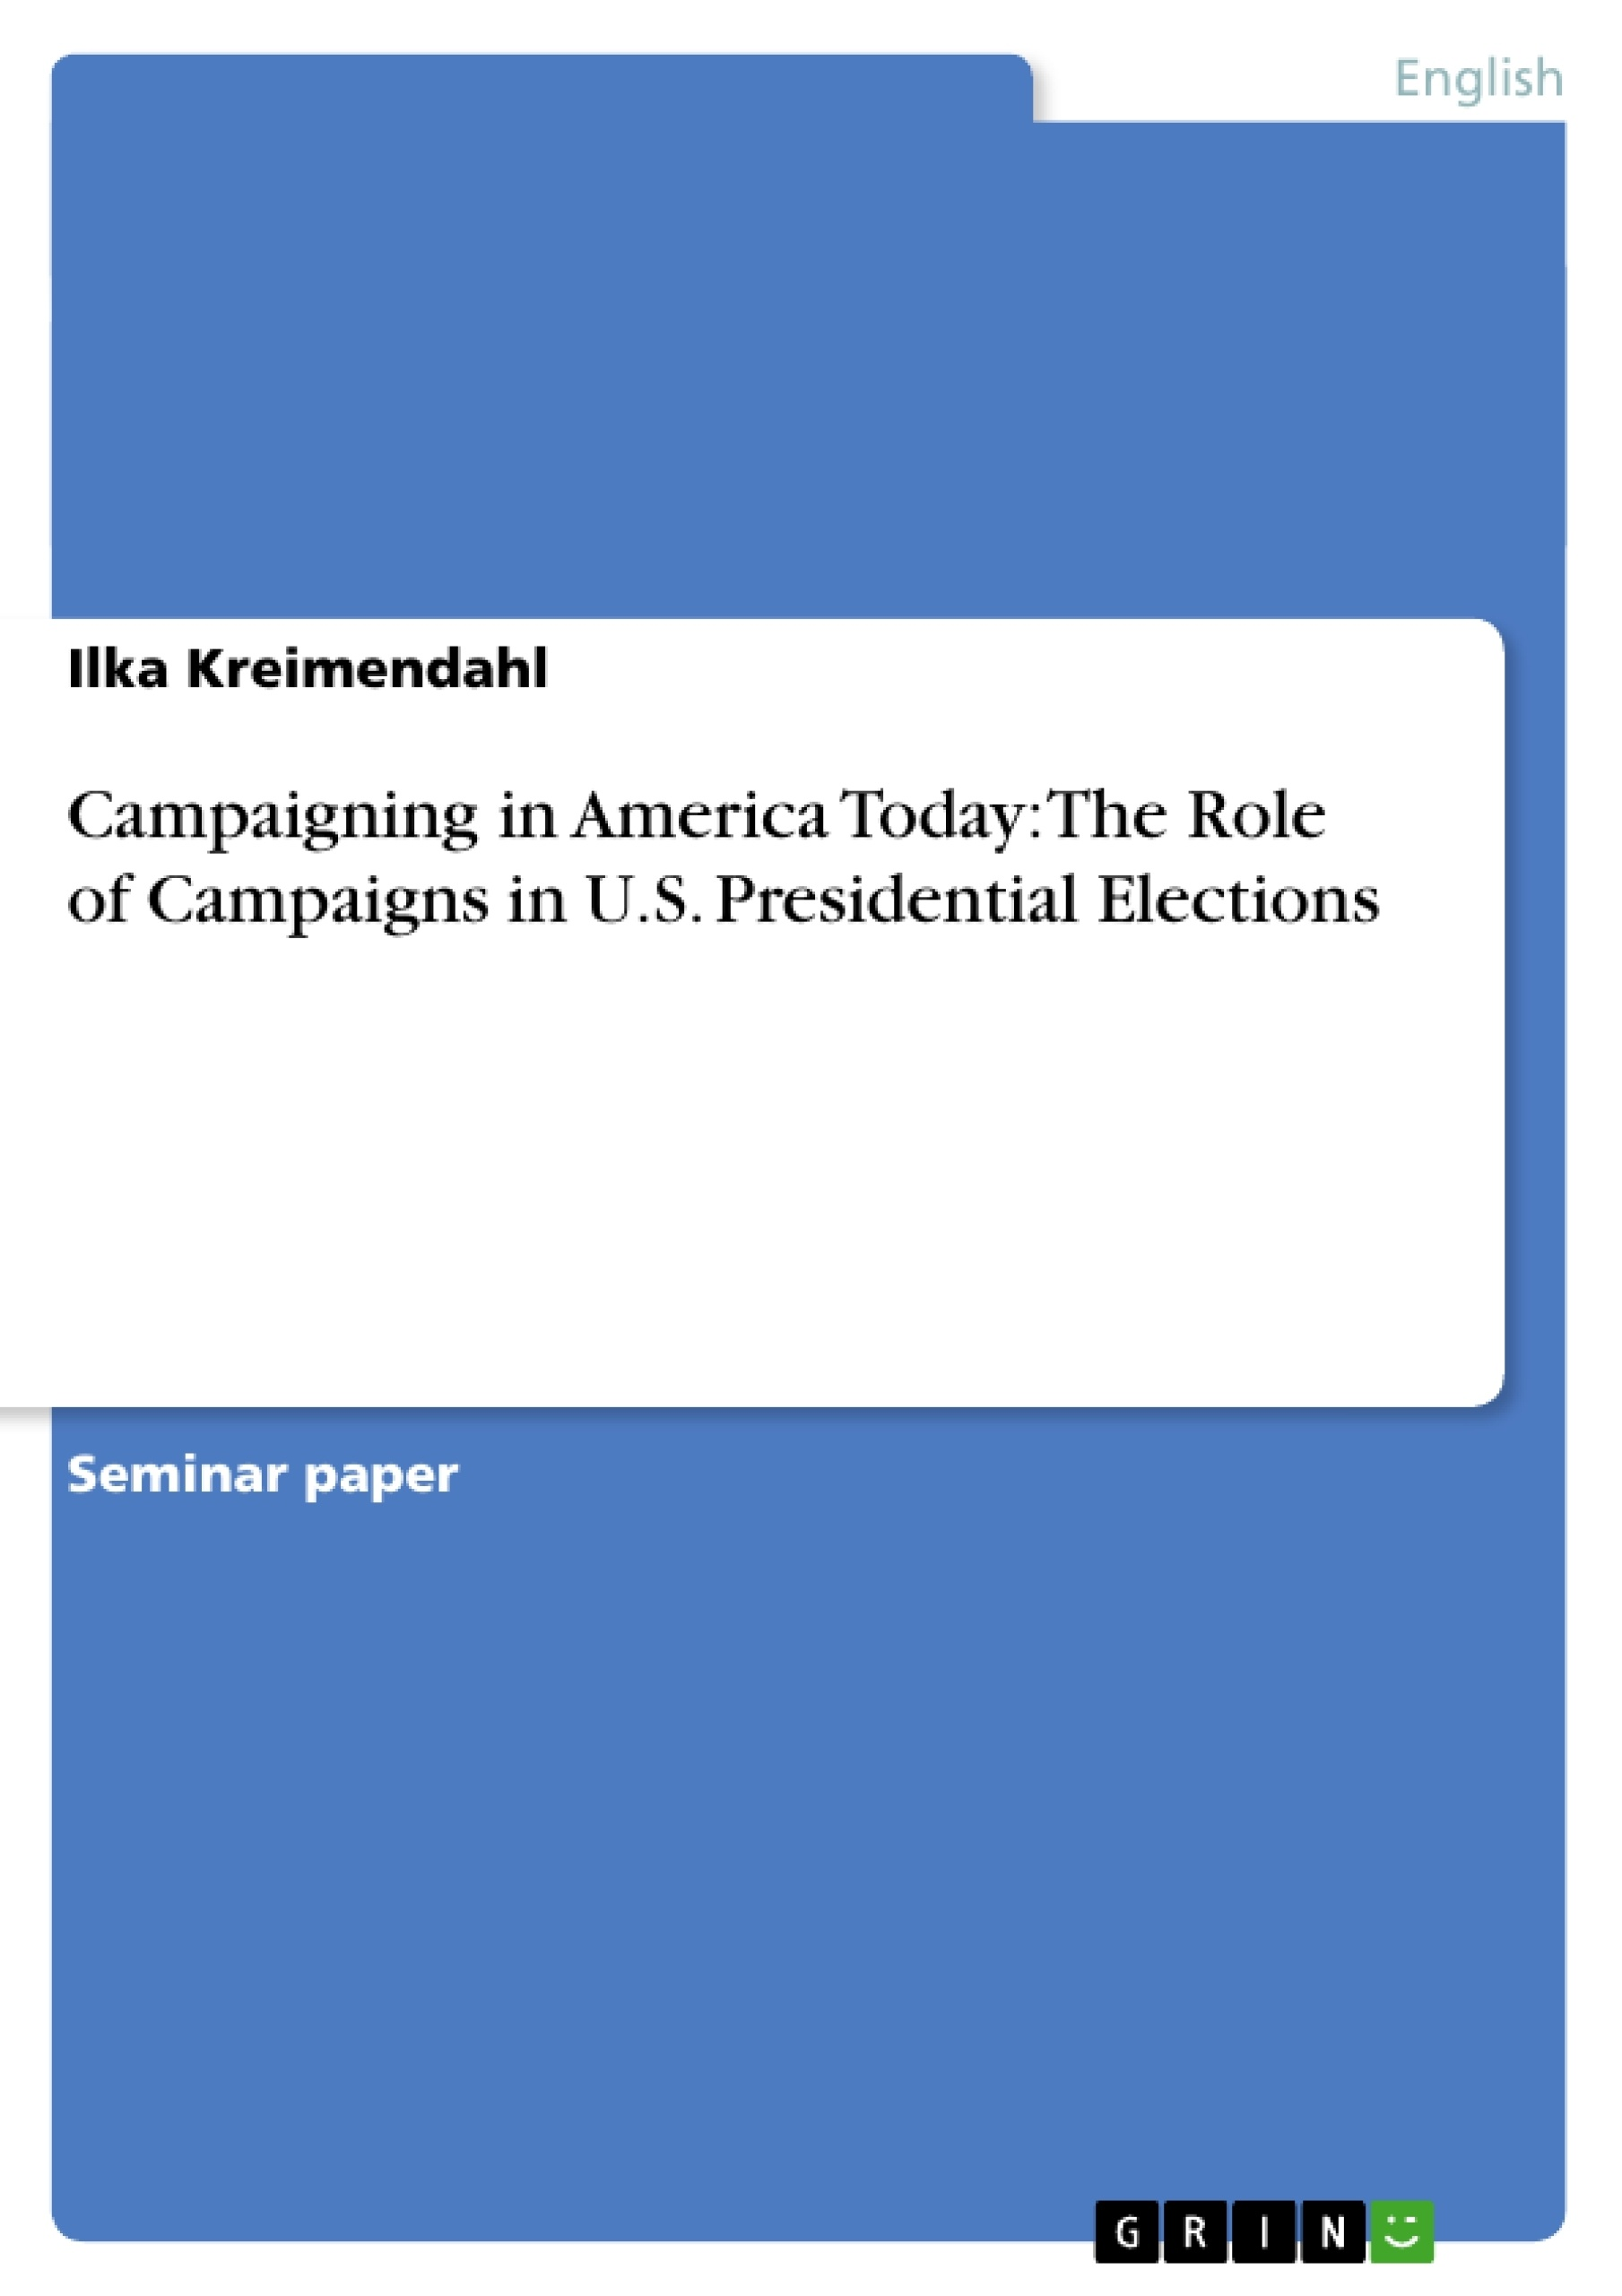 Title: Campaigning in America Today: The Role of Campaigns in U.S. Presidential Elections